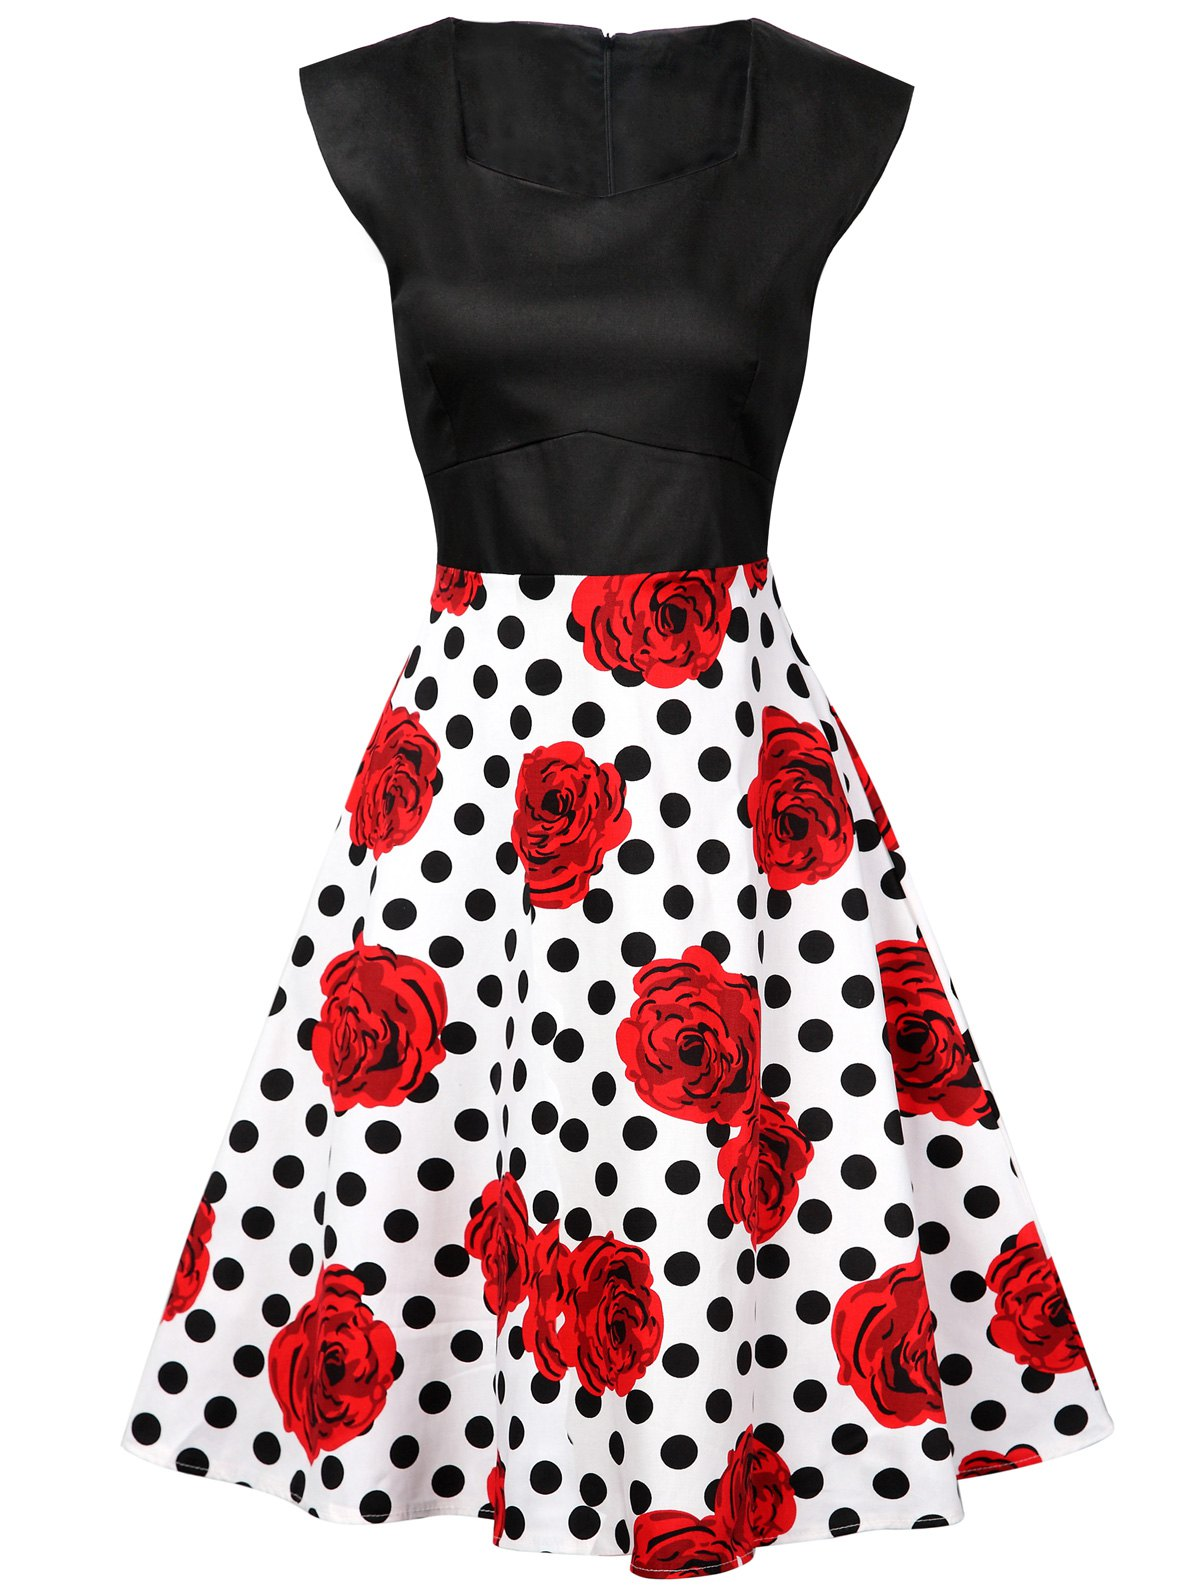 Polka Dot Floral Knee Length Flare Dress - BLACK/WHITE/RED XL